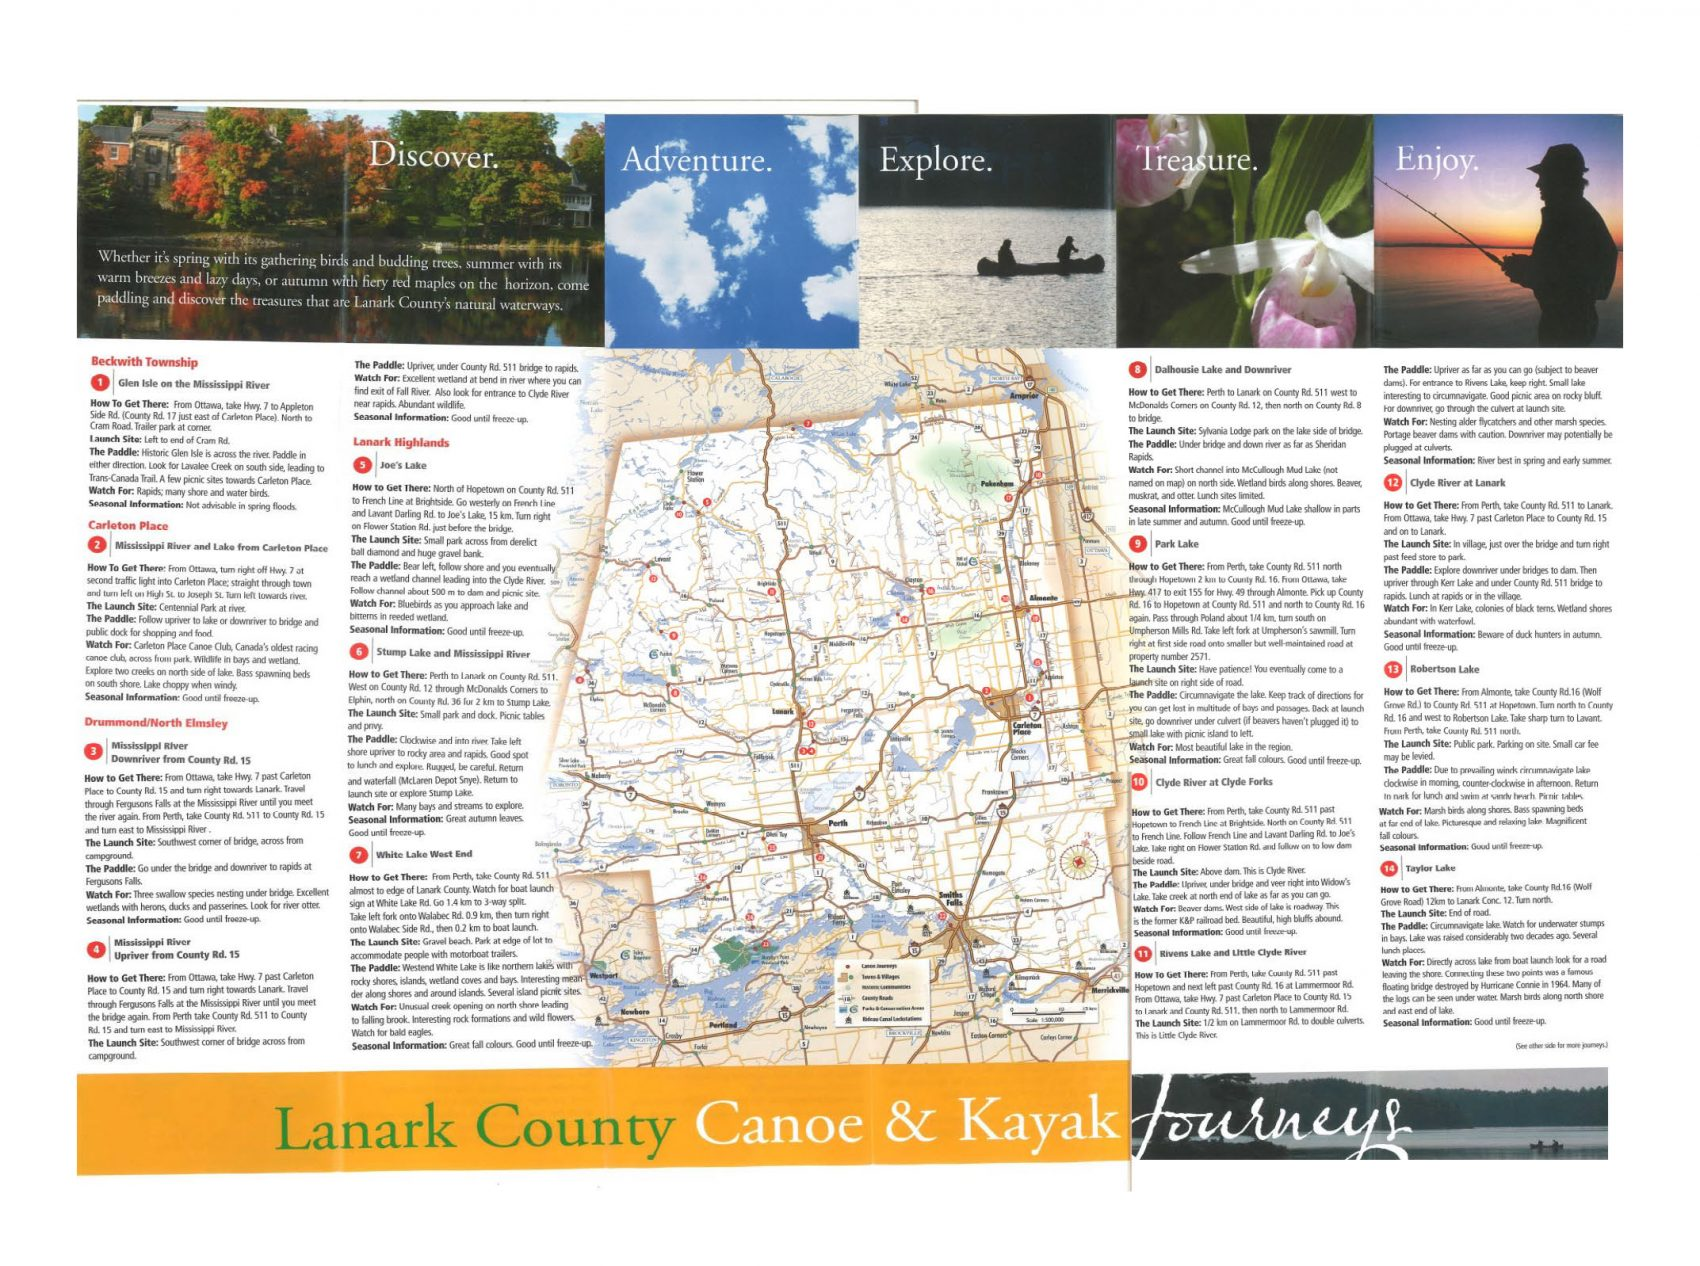 Canoe Kayak Journeys_page 1